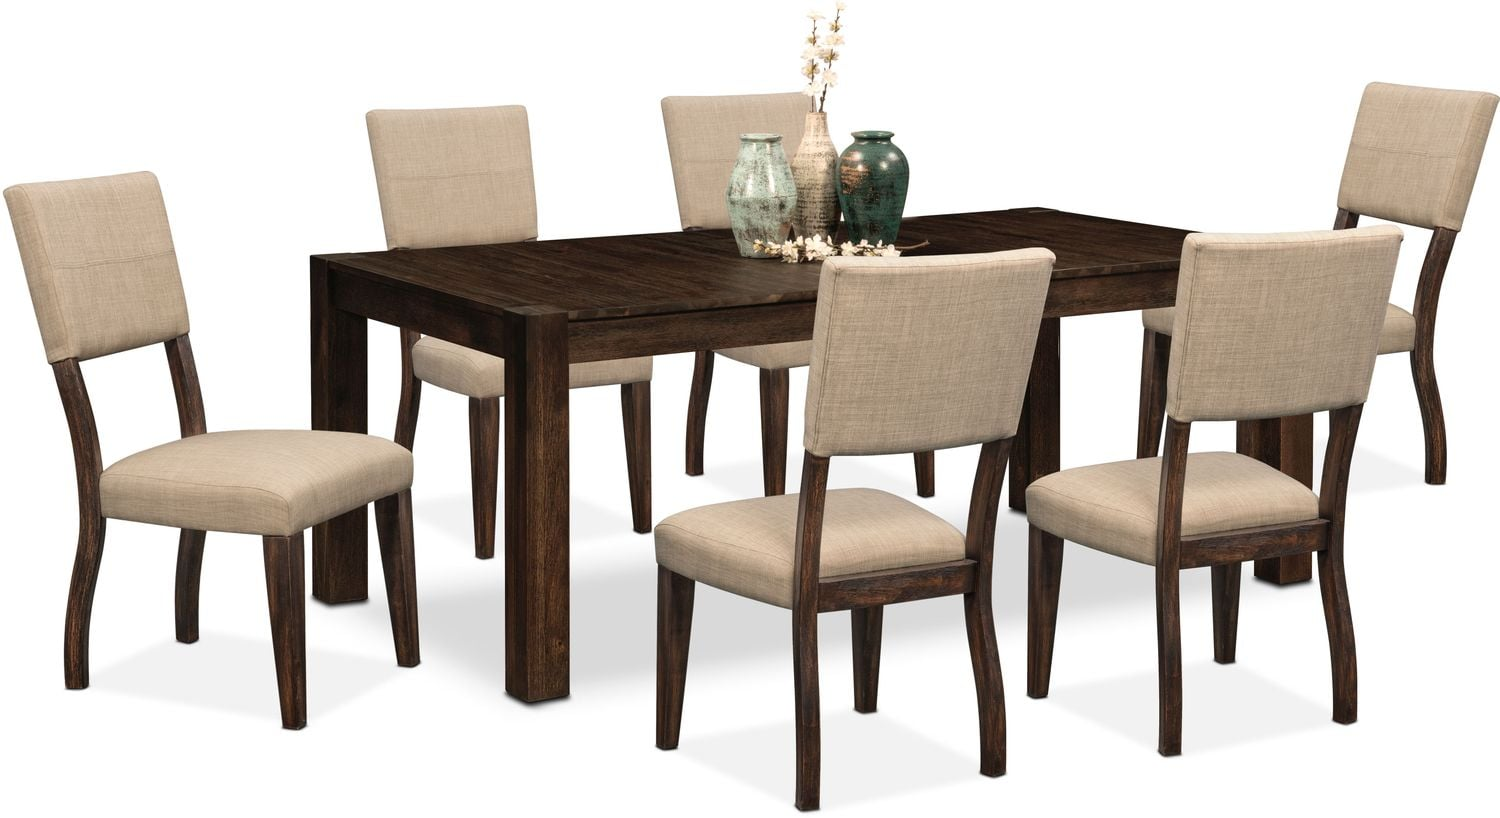 Tribeca Table And 6 Upholstered Side Chairs Tobacco American Signature Fu